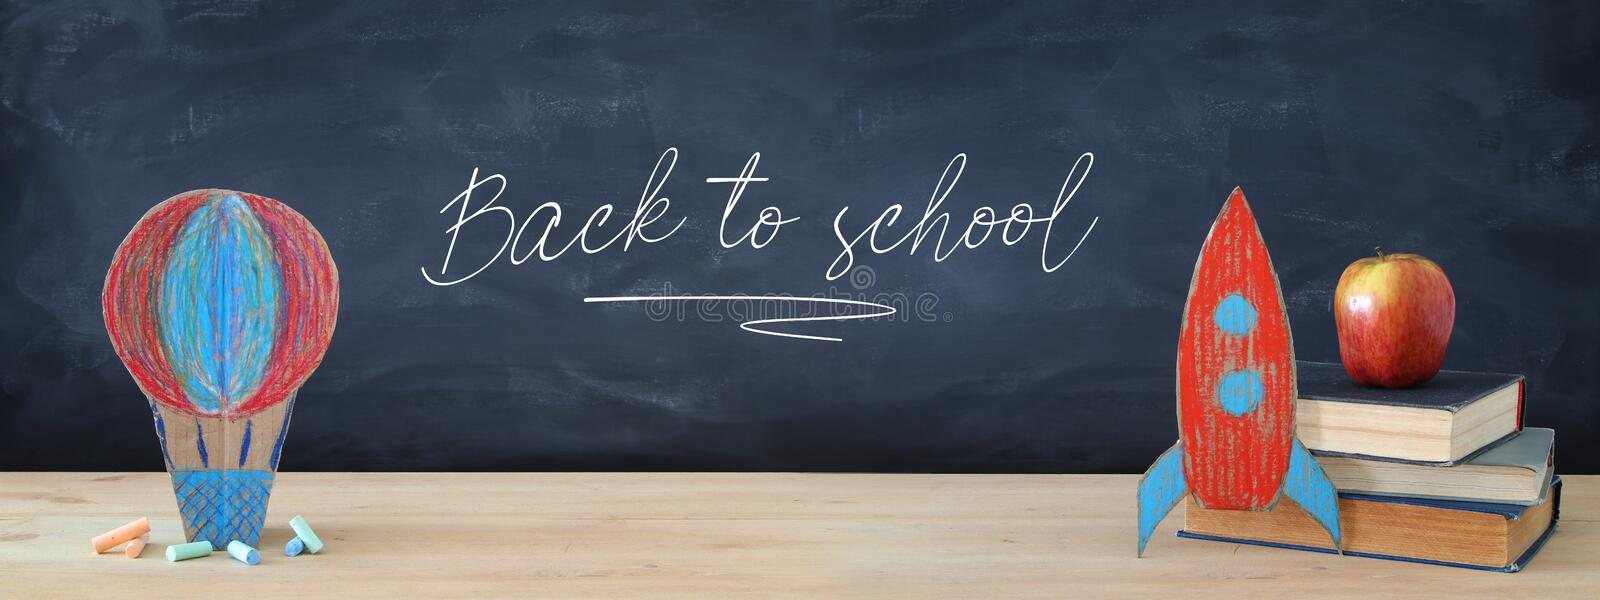 Back to school banner. Painted cardboard rocket and Hot air balloon next to books in front of classroom blackboard. stock image